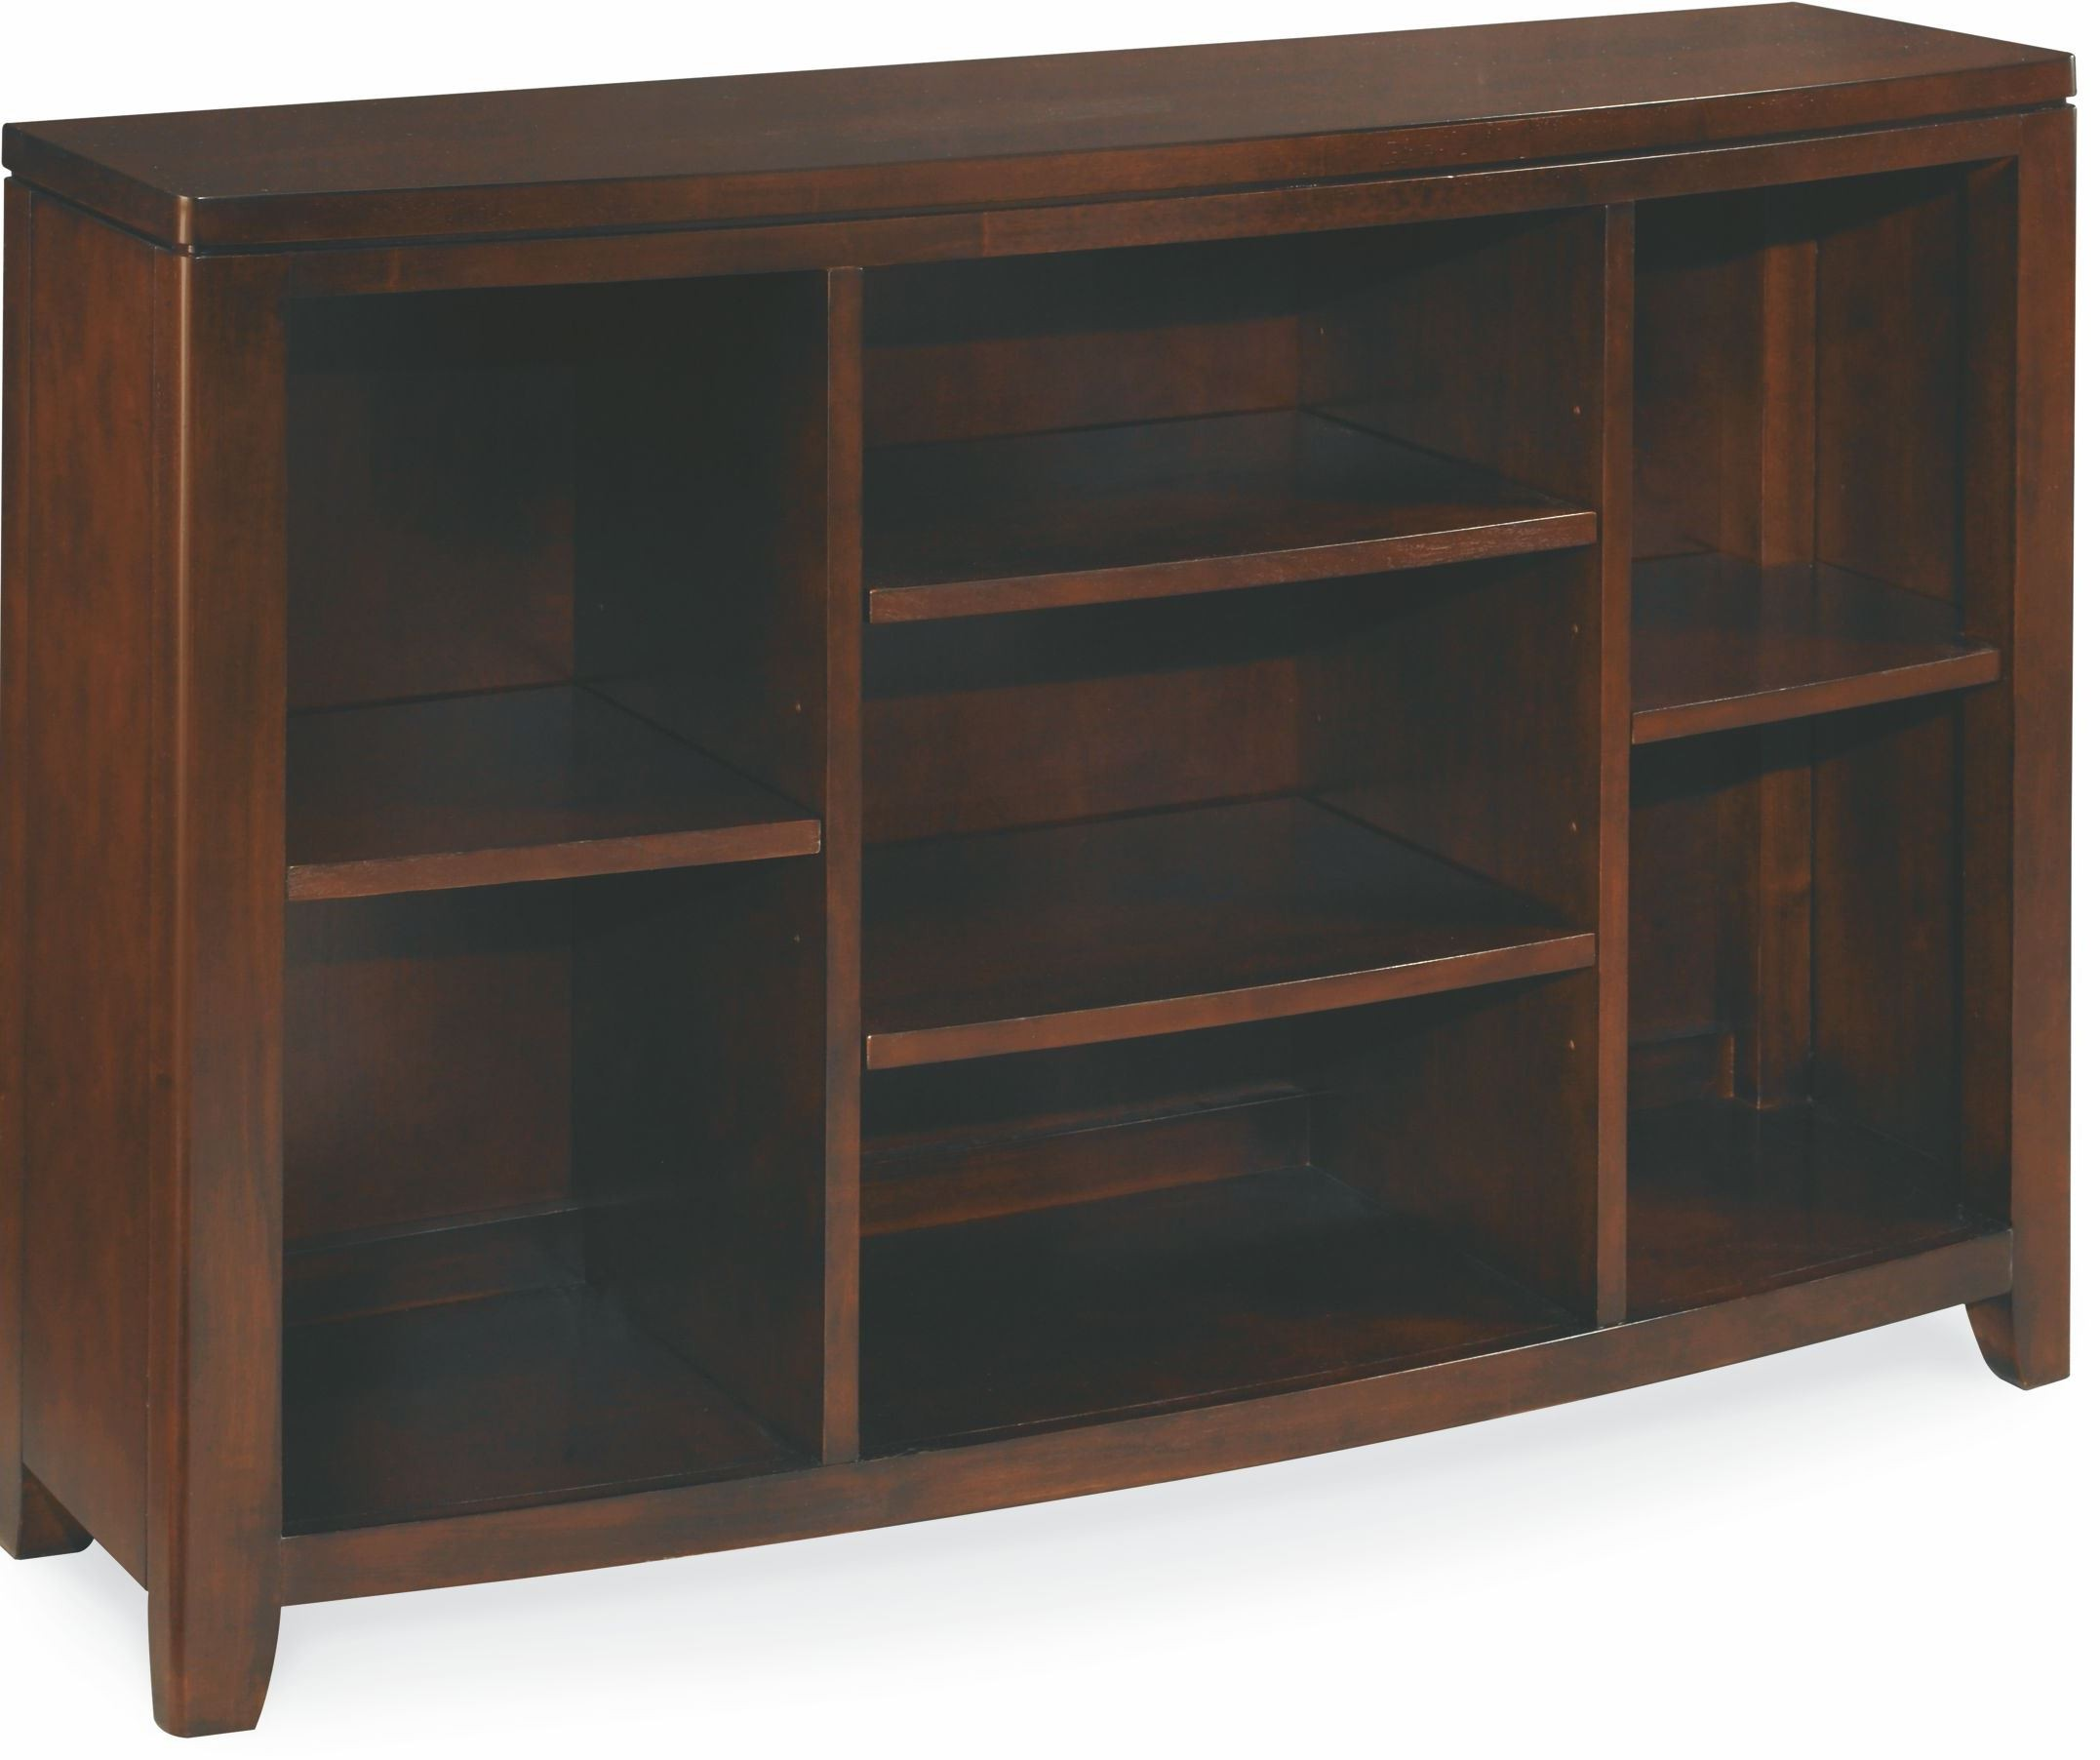 Tribecca Root Beer Bookcase Console From American Drew 912 926 Coleman Furniture